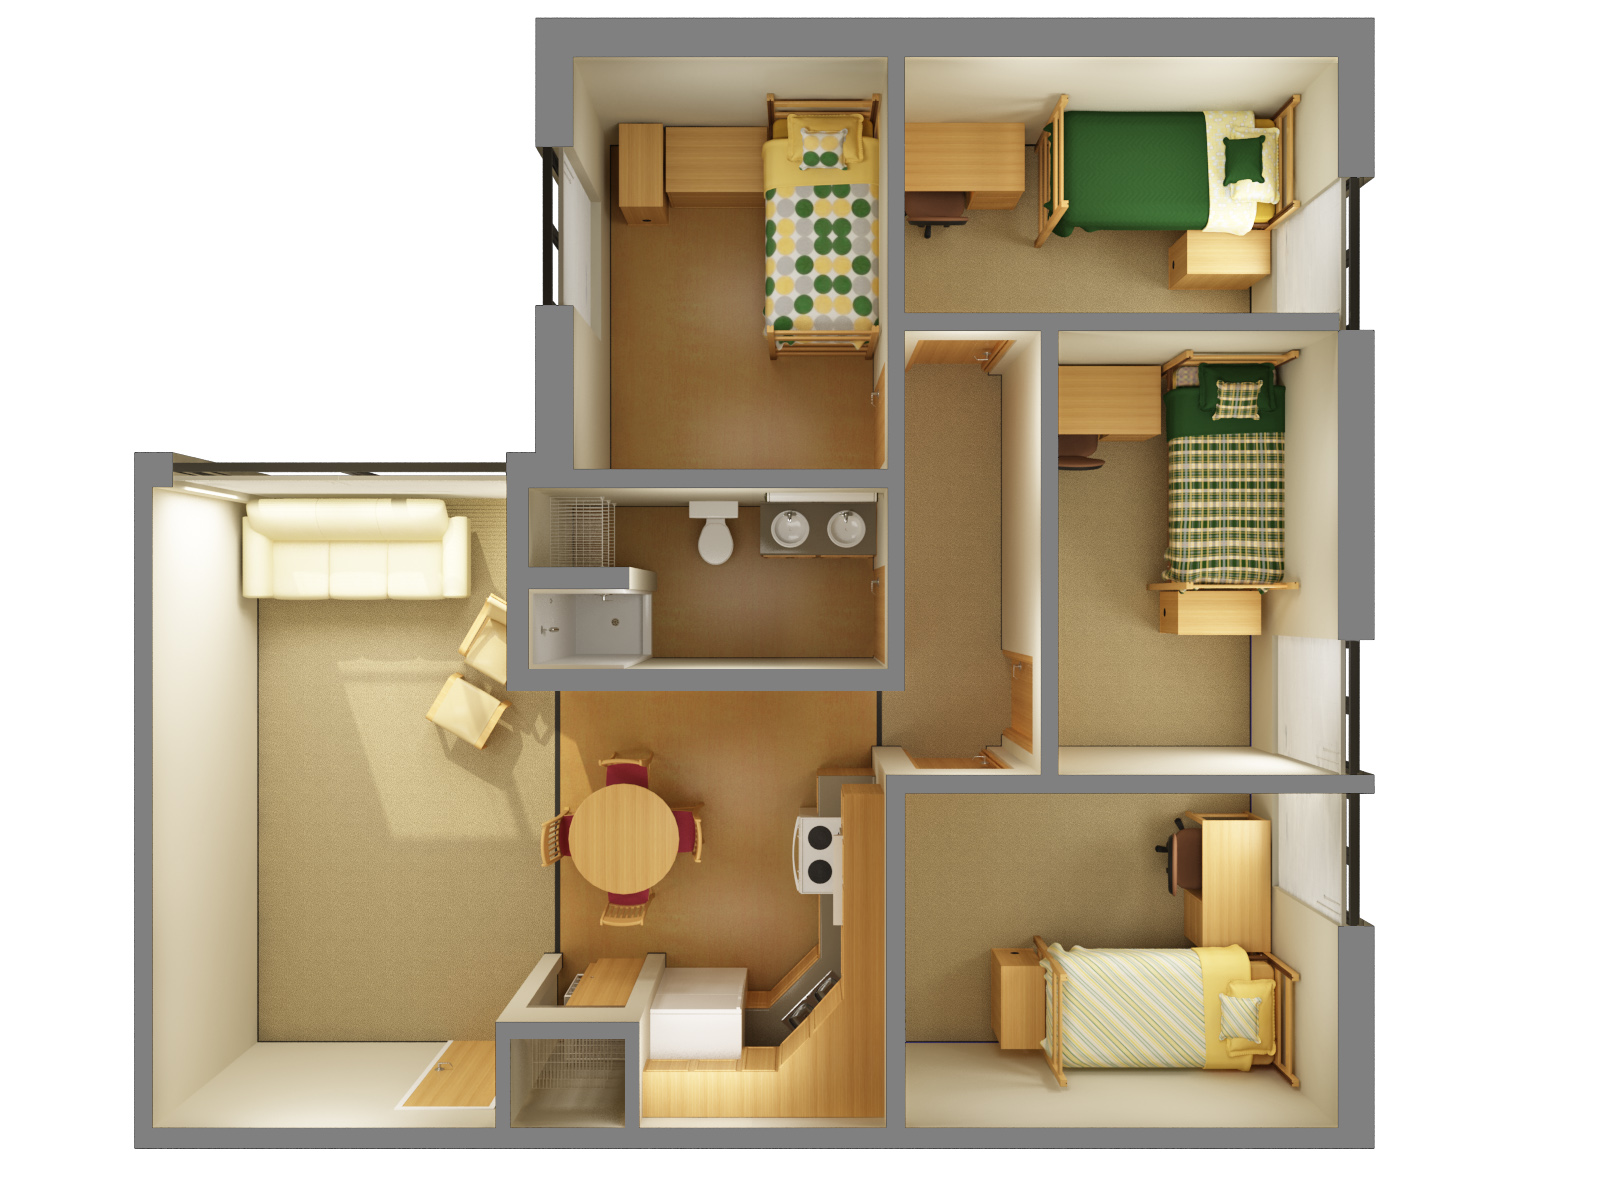 Mathew living learning centers residence life ndsu for Quad apartment plans